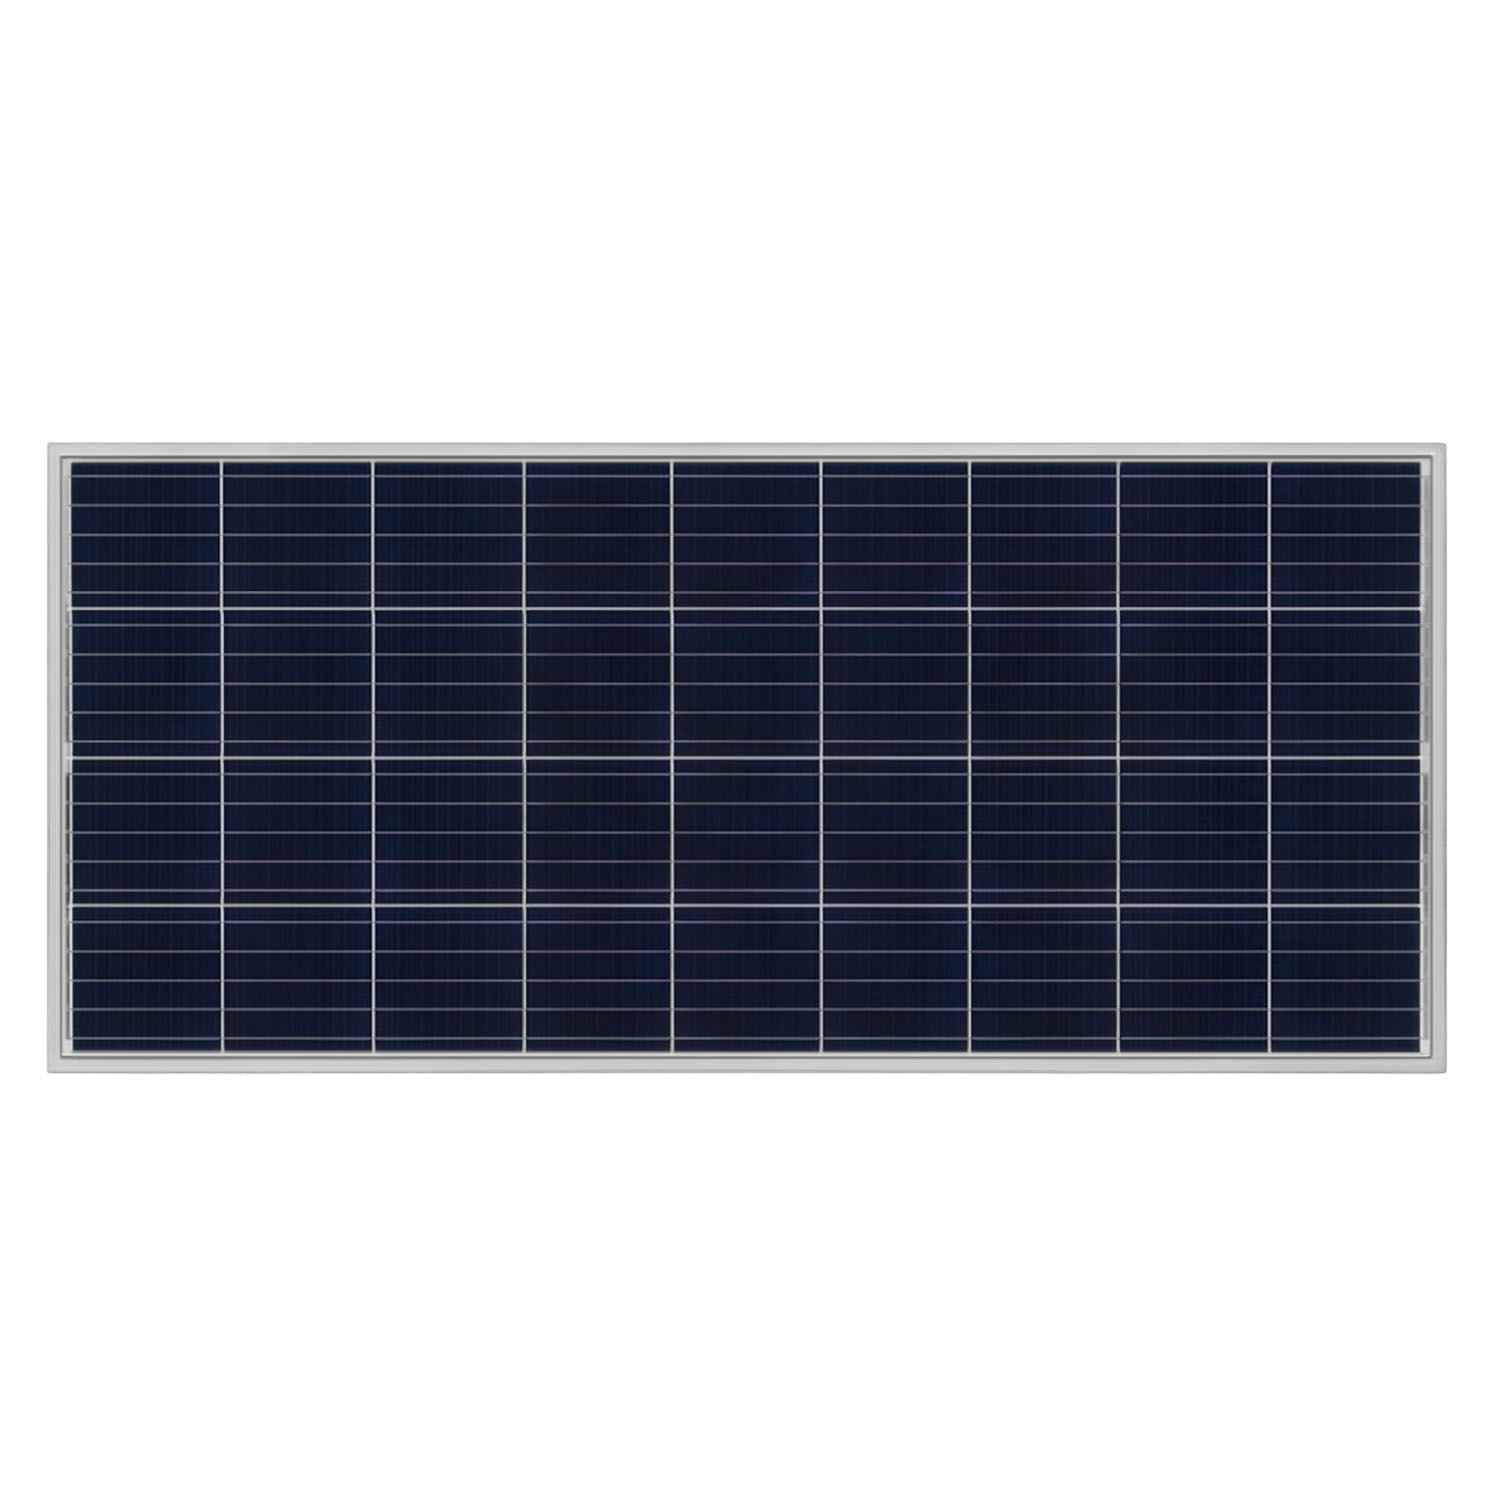 Mighty Max Solar 160 Watt 12V Off Grid Polycrystalline Solar Panel, Highly Efficient Solar Panels Power for Cabin, RV, Shed, Marine, Boat, Trailer, Roof Rack, Campers, Caravan, Battery Charging and Other Off Grid Applications